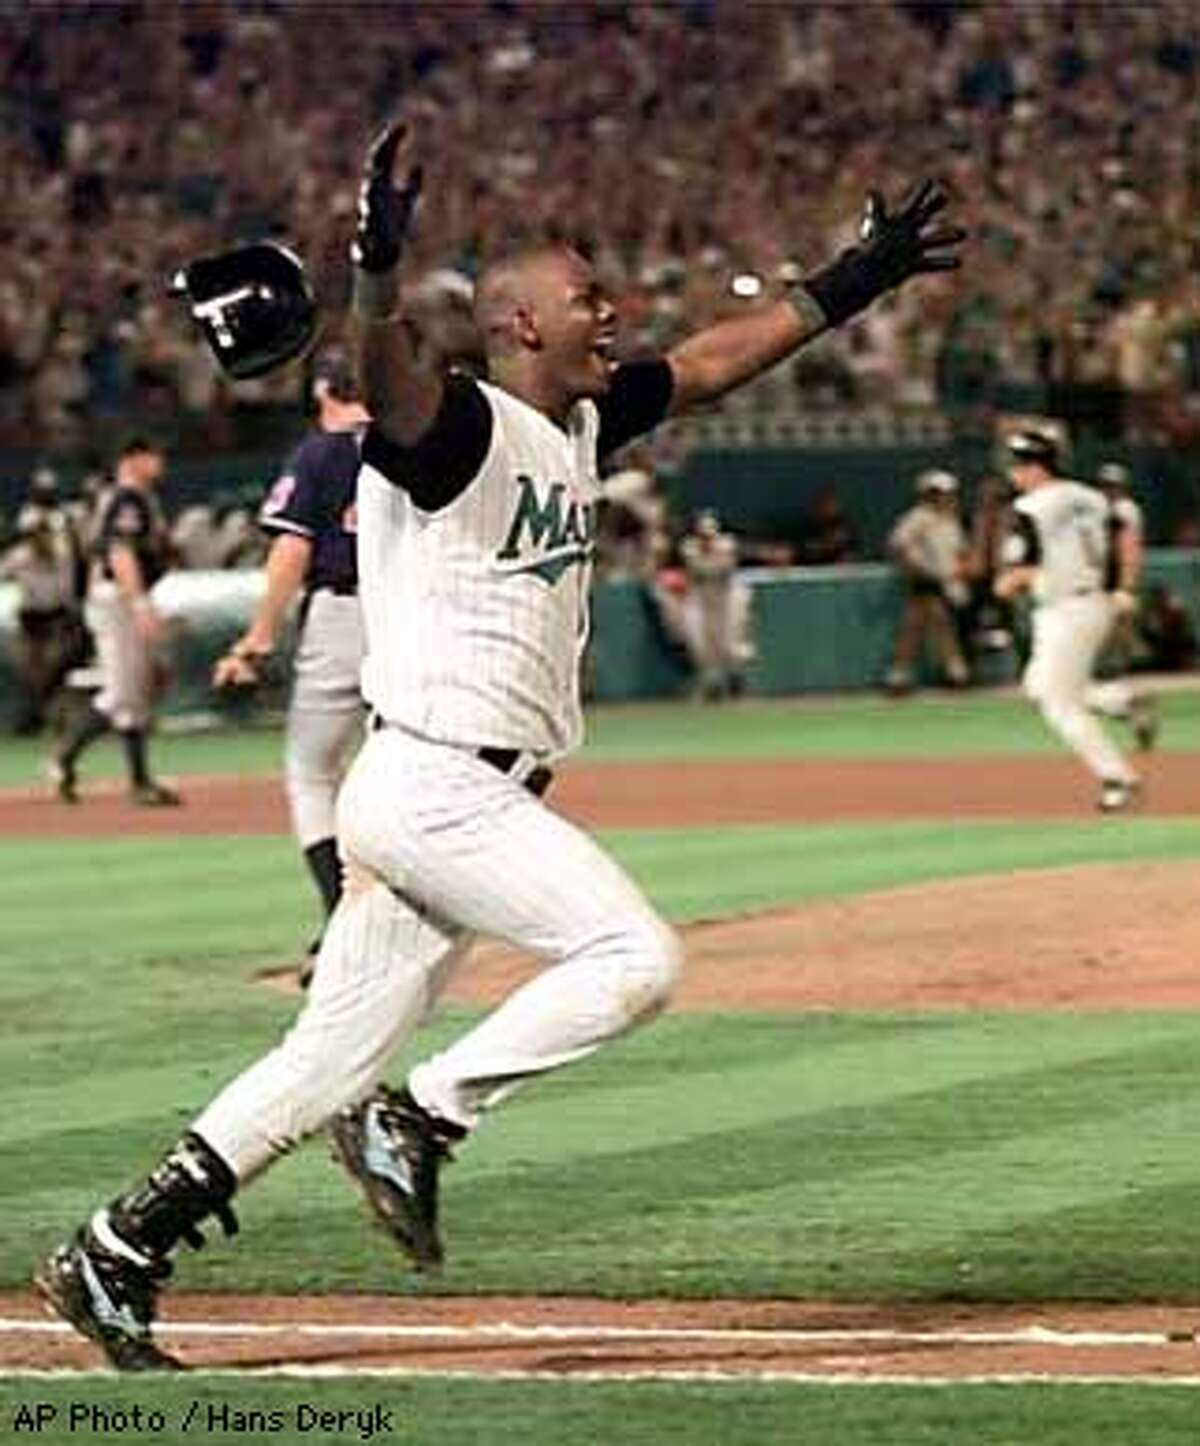 Florida Marlins Edgar Renteria runs down the first base line as his single scores Craig Counsell to win Game 7 and the World Series Sunday, Oct. 26, 1997, at Miami's Pro Player Stadium. The Marlins defeated the Cleveland Indians 3-2. The team ended the 1998 season with the worst record in baseball. The franchise returned to champion status in 2003, but by then the 1997 squad had been completely dismantled. (AP Photo/Hans Deryk)